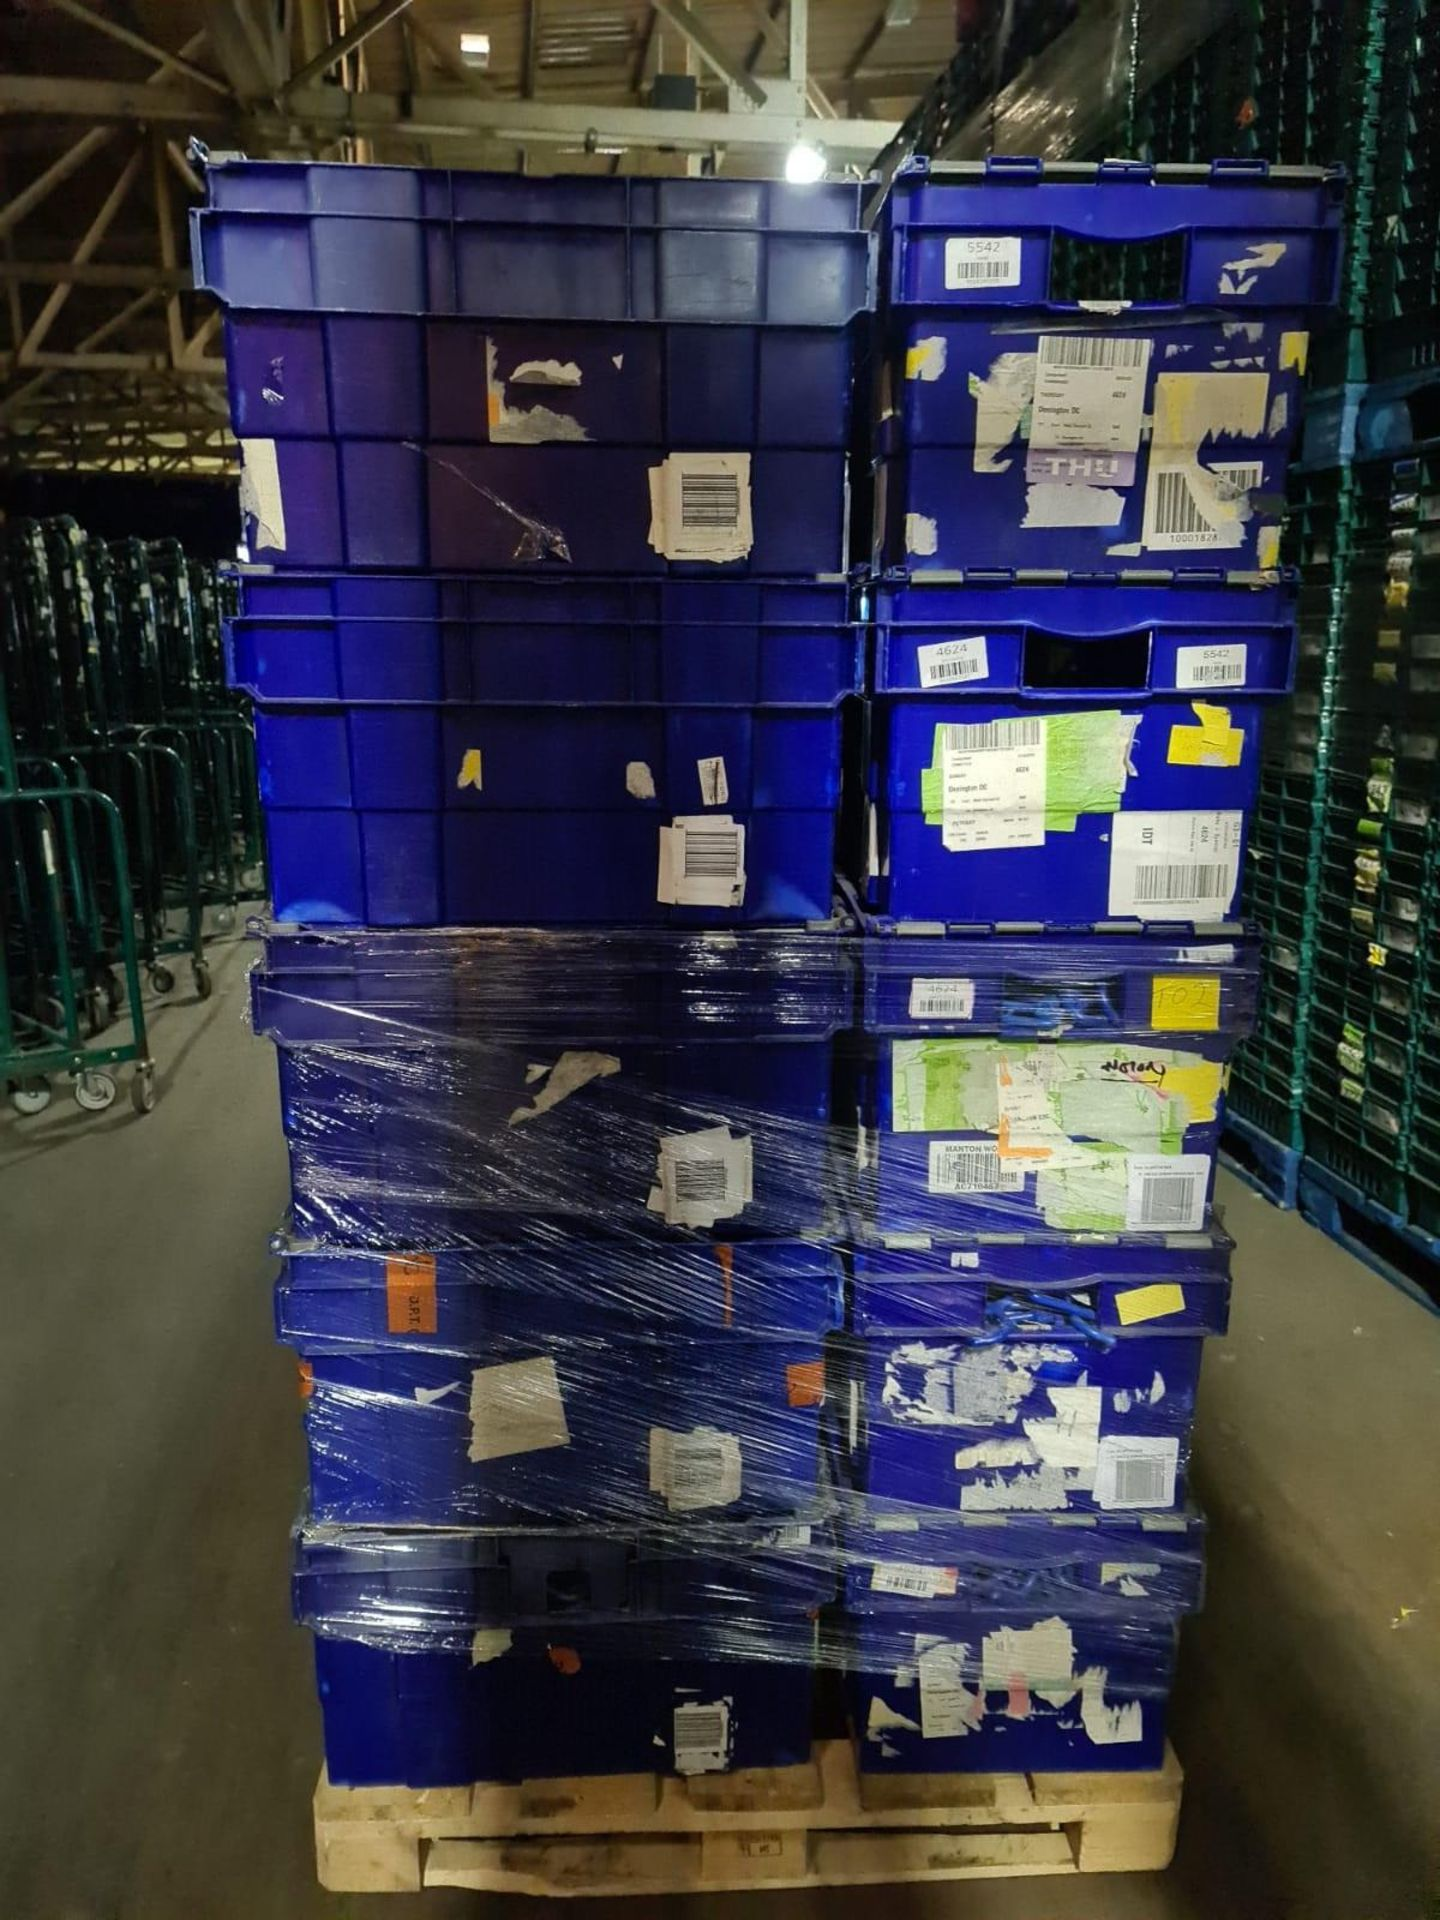 Pallet of 70 x used Blue Solid industrial storage containers/tote boxes from M&S. - Image 3 of 4